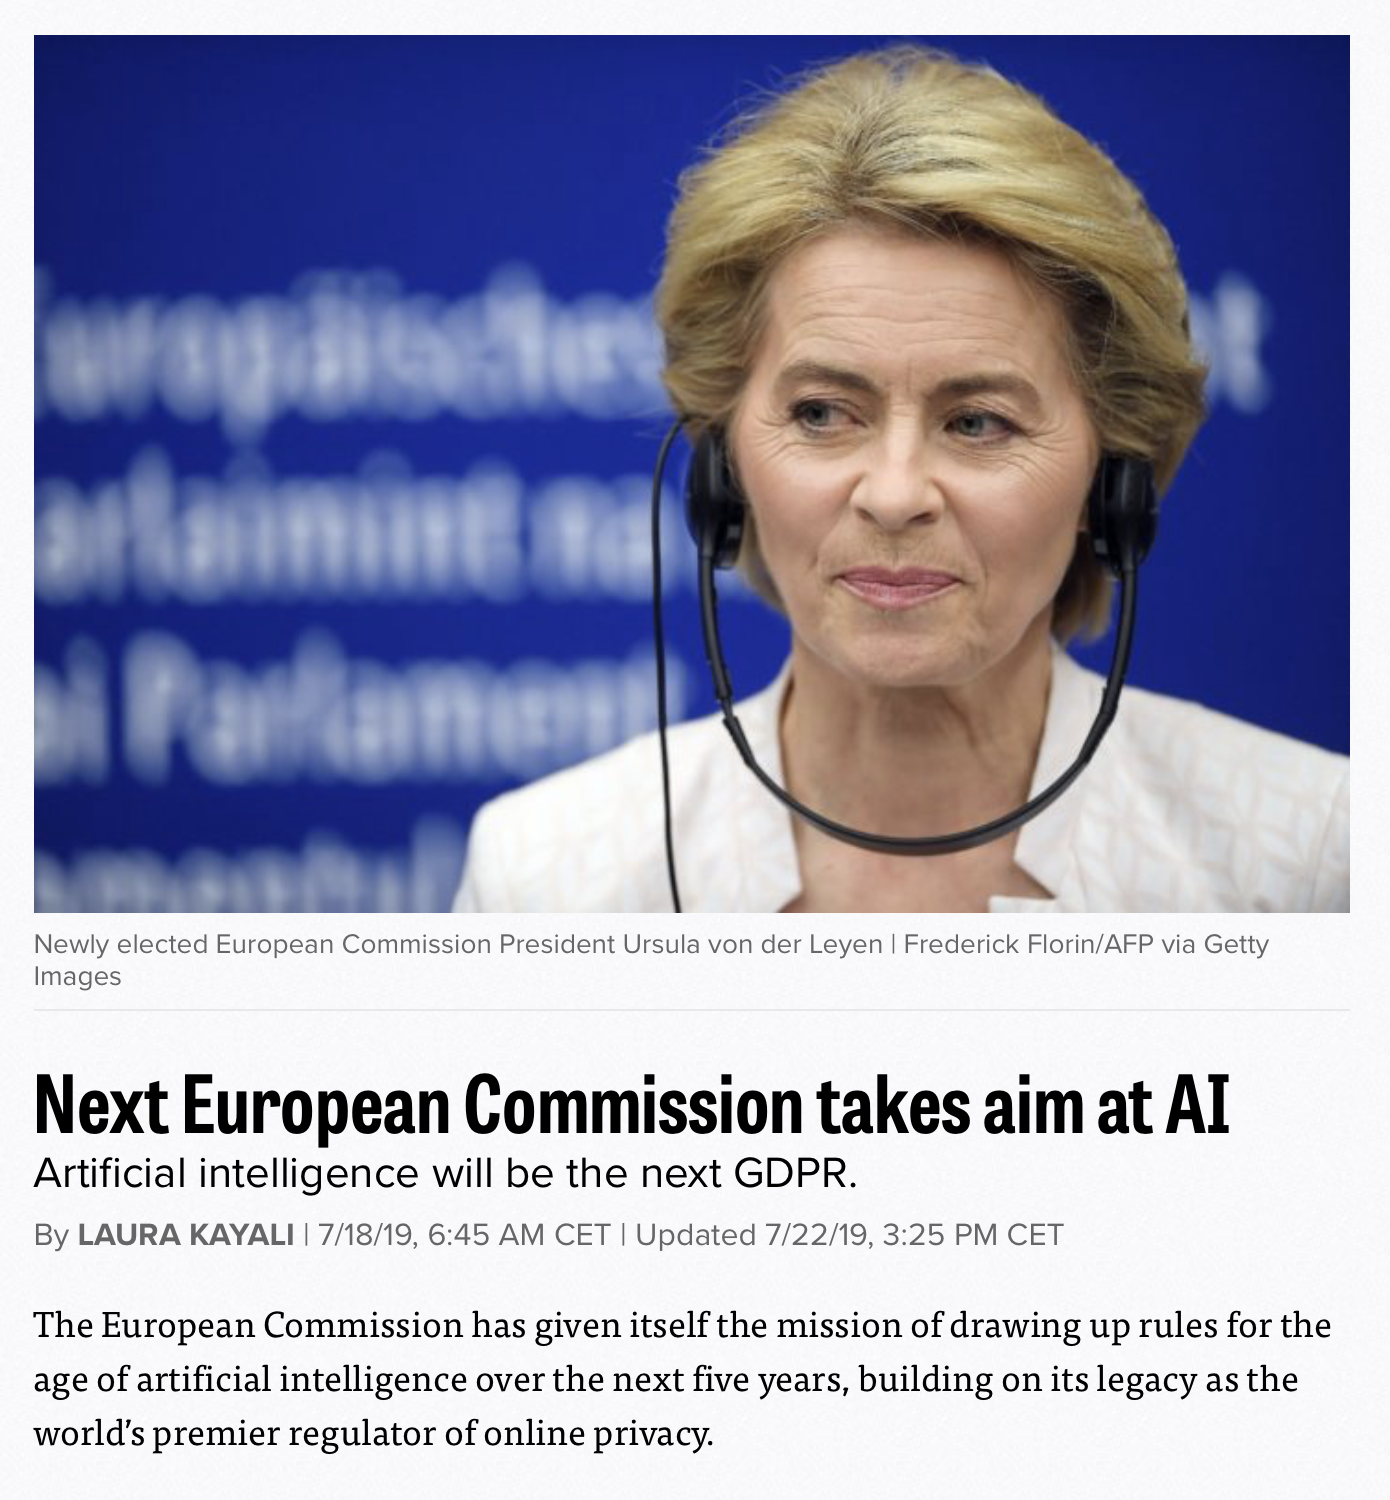 The European Commission takes aim at AI: the AI-GDPR is coming